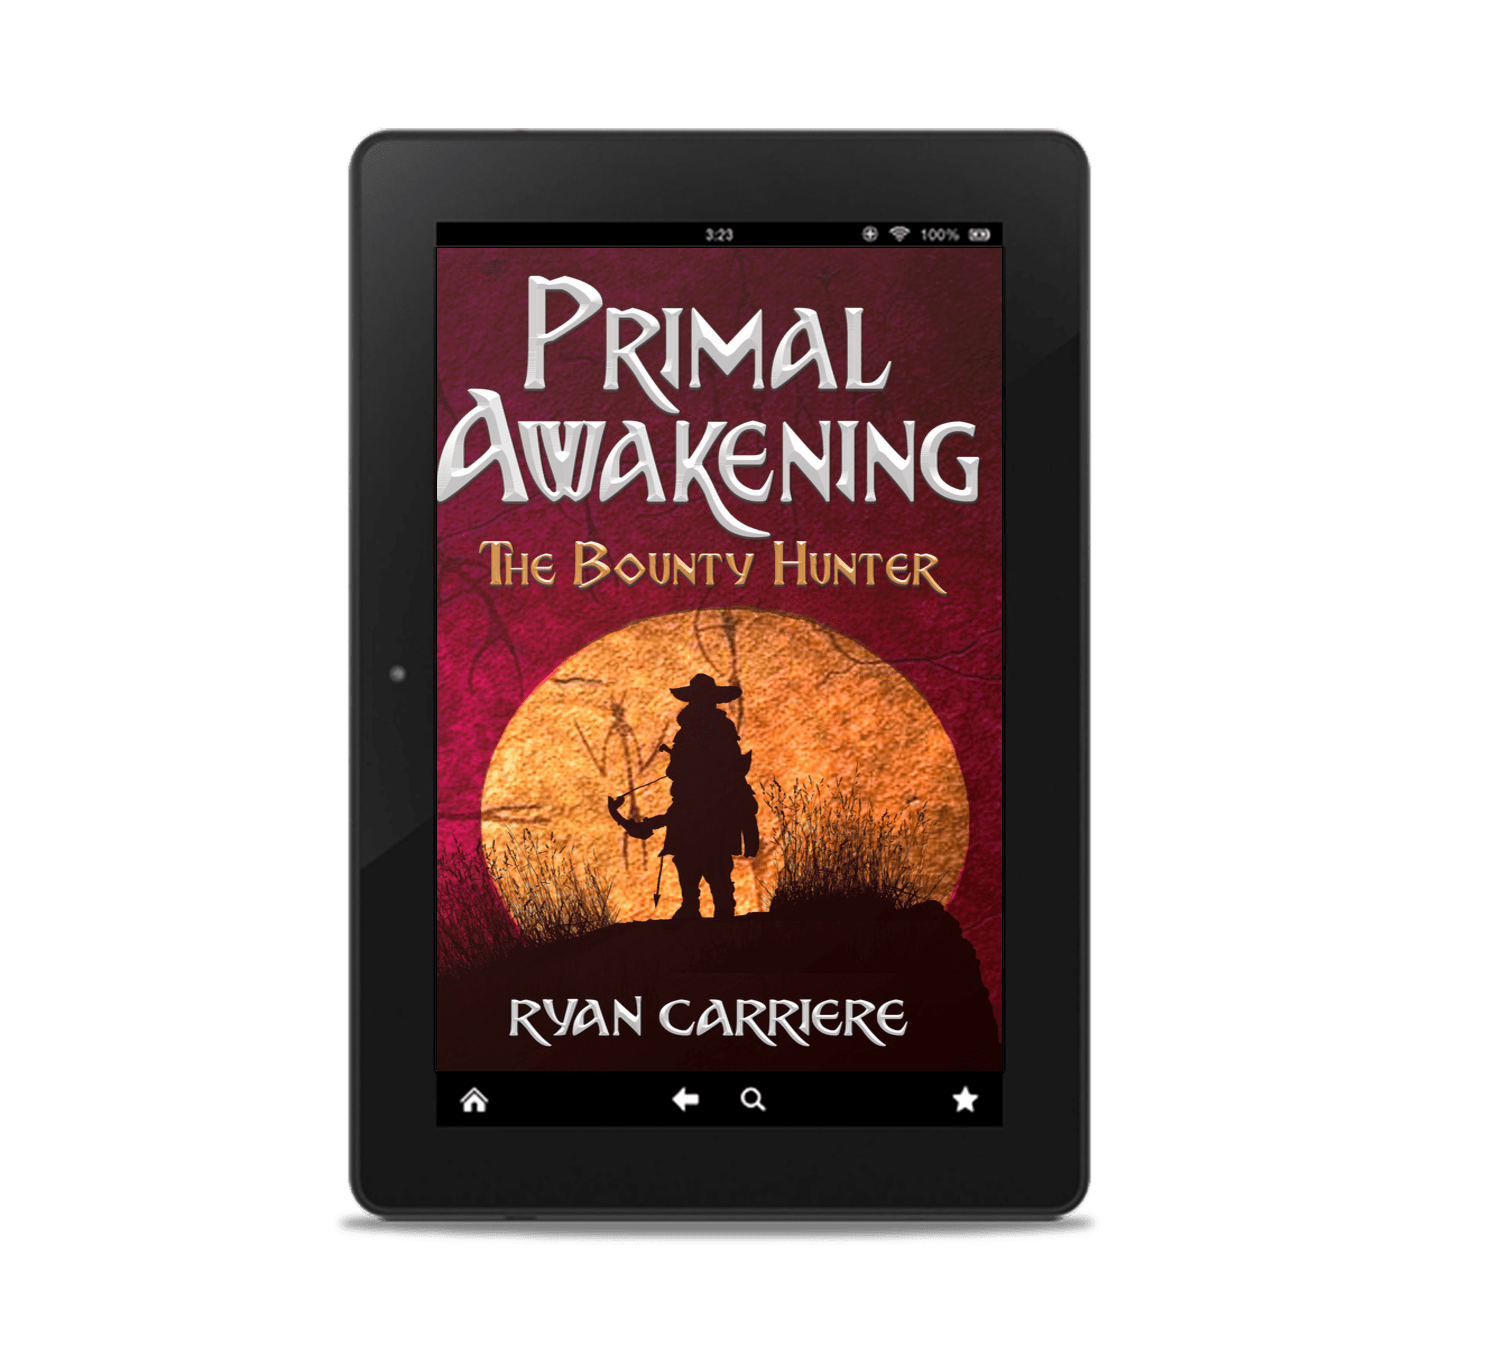 Ryan Carriere,ASSASSIN RISING, Ryan Carriere, RYAN CARRIERE